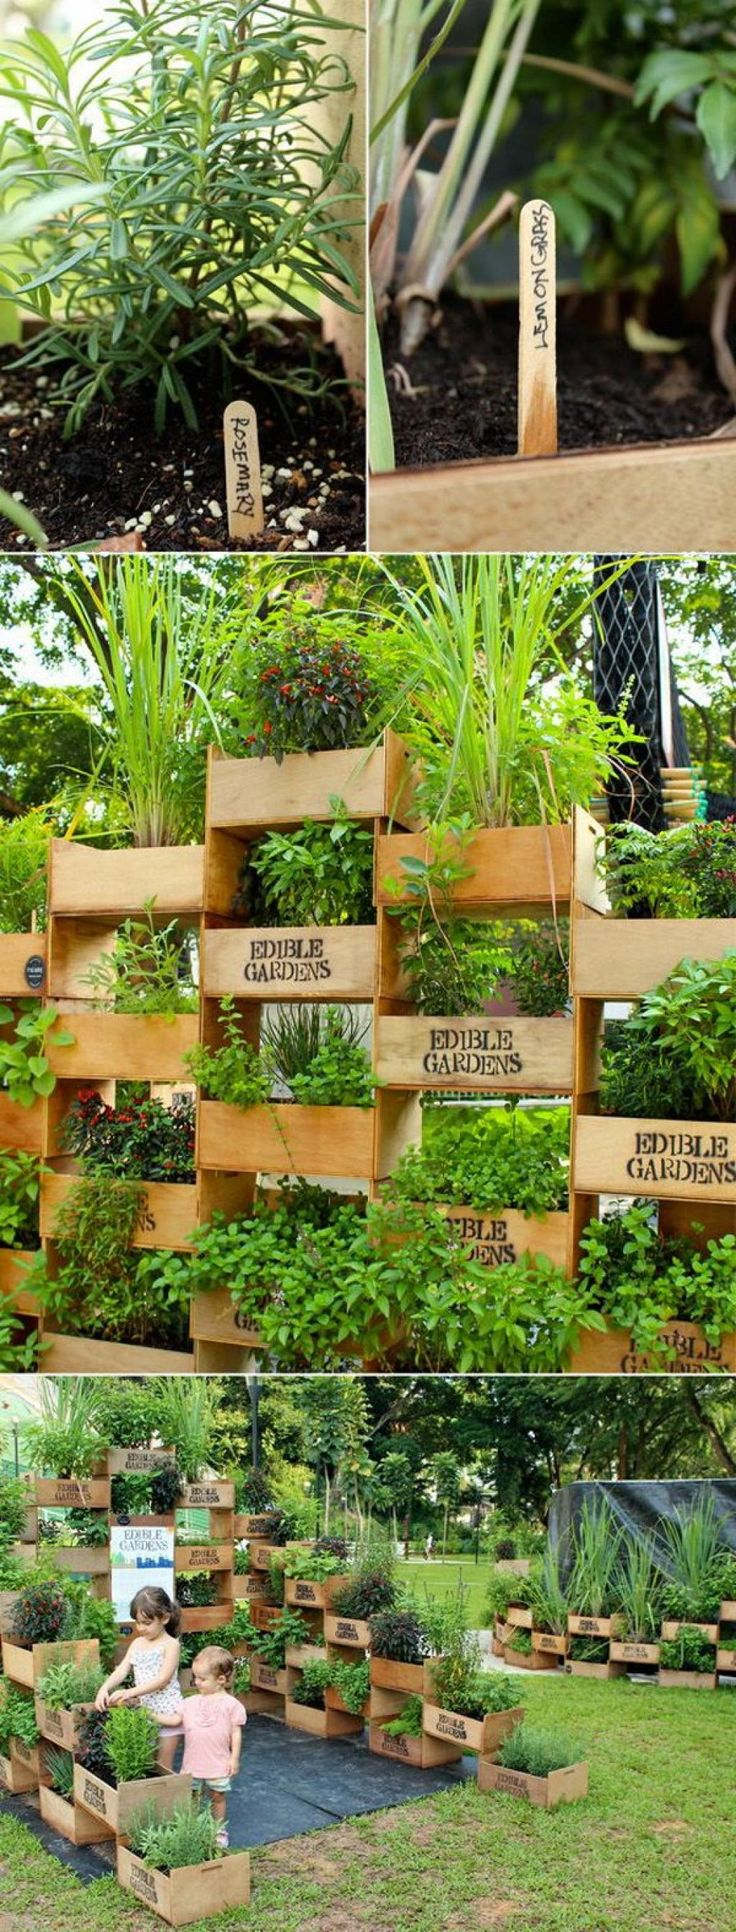 Diy Creative Vertical Gardening Ideas For Vegetables And Herbs